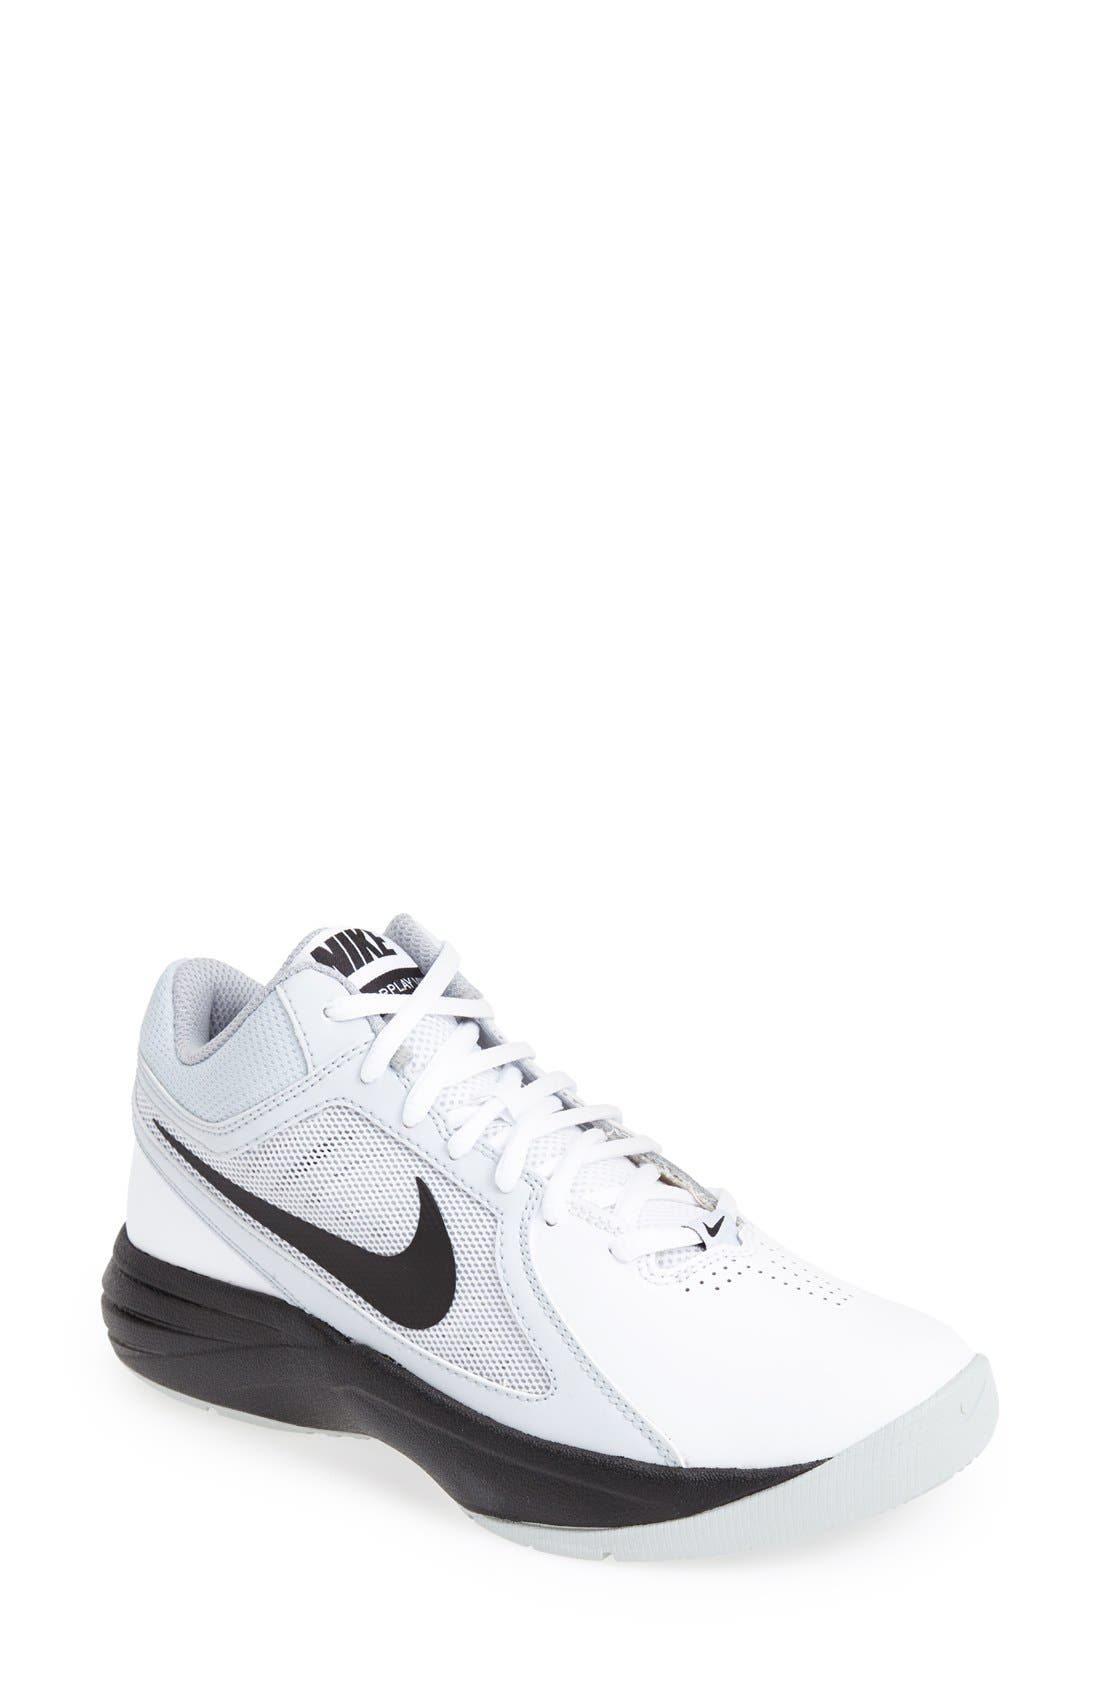 Alternate Image 1 Selected - Nike 'Overplay VIII' Basketball Shoe (Women)